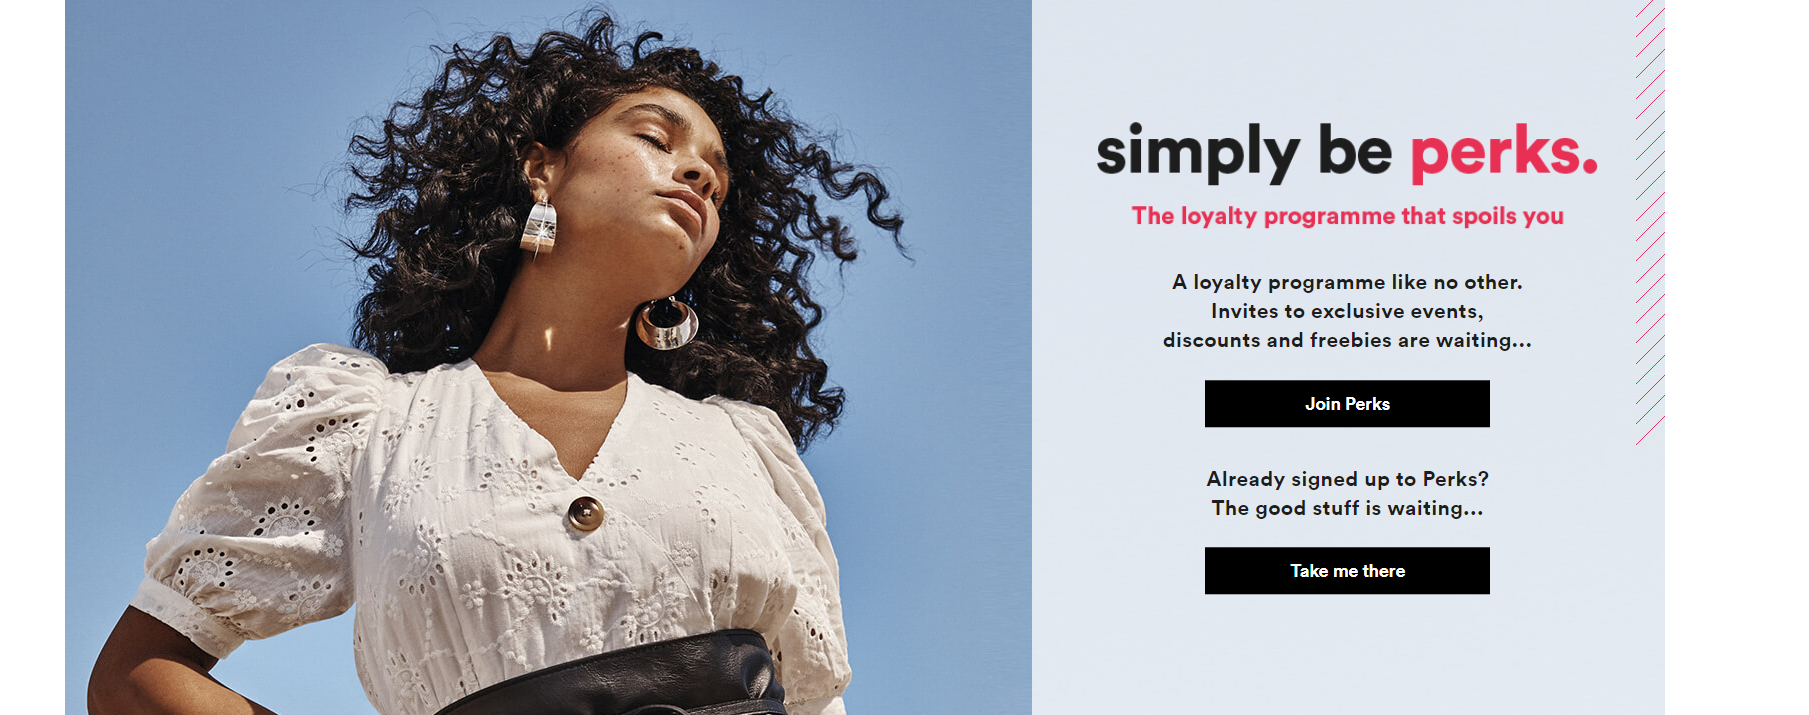 The members of Simply Be Perks program get discounts, receive beauty goods and can participate in competitions.